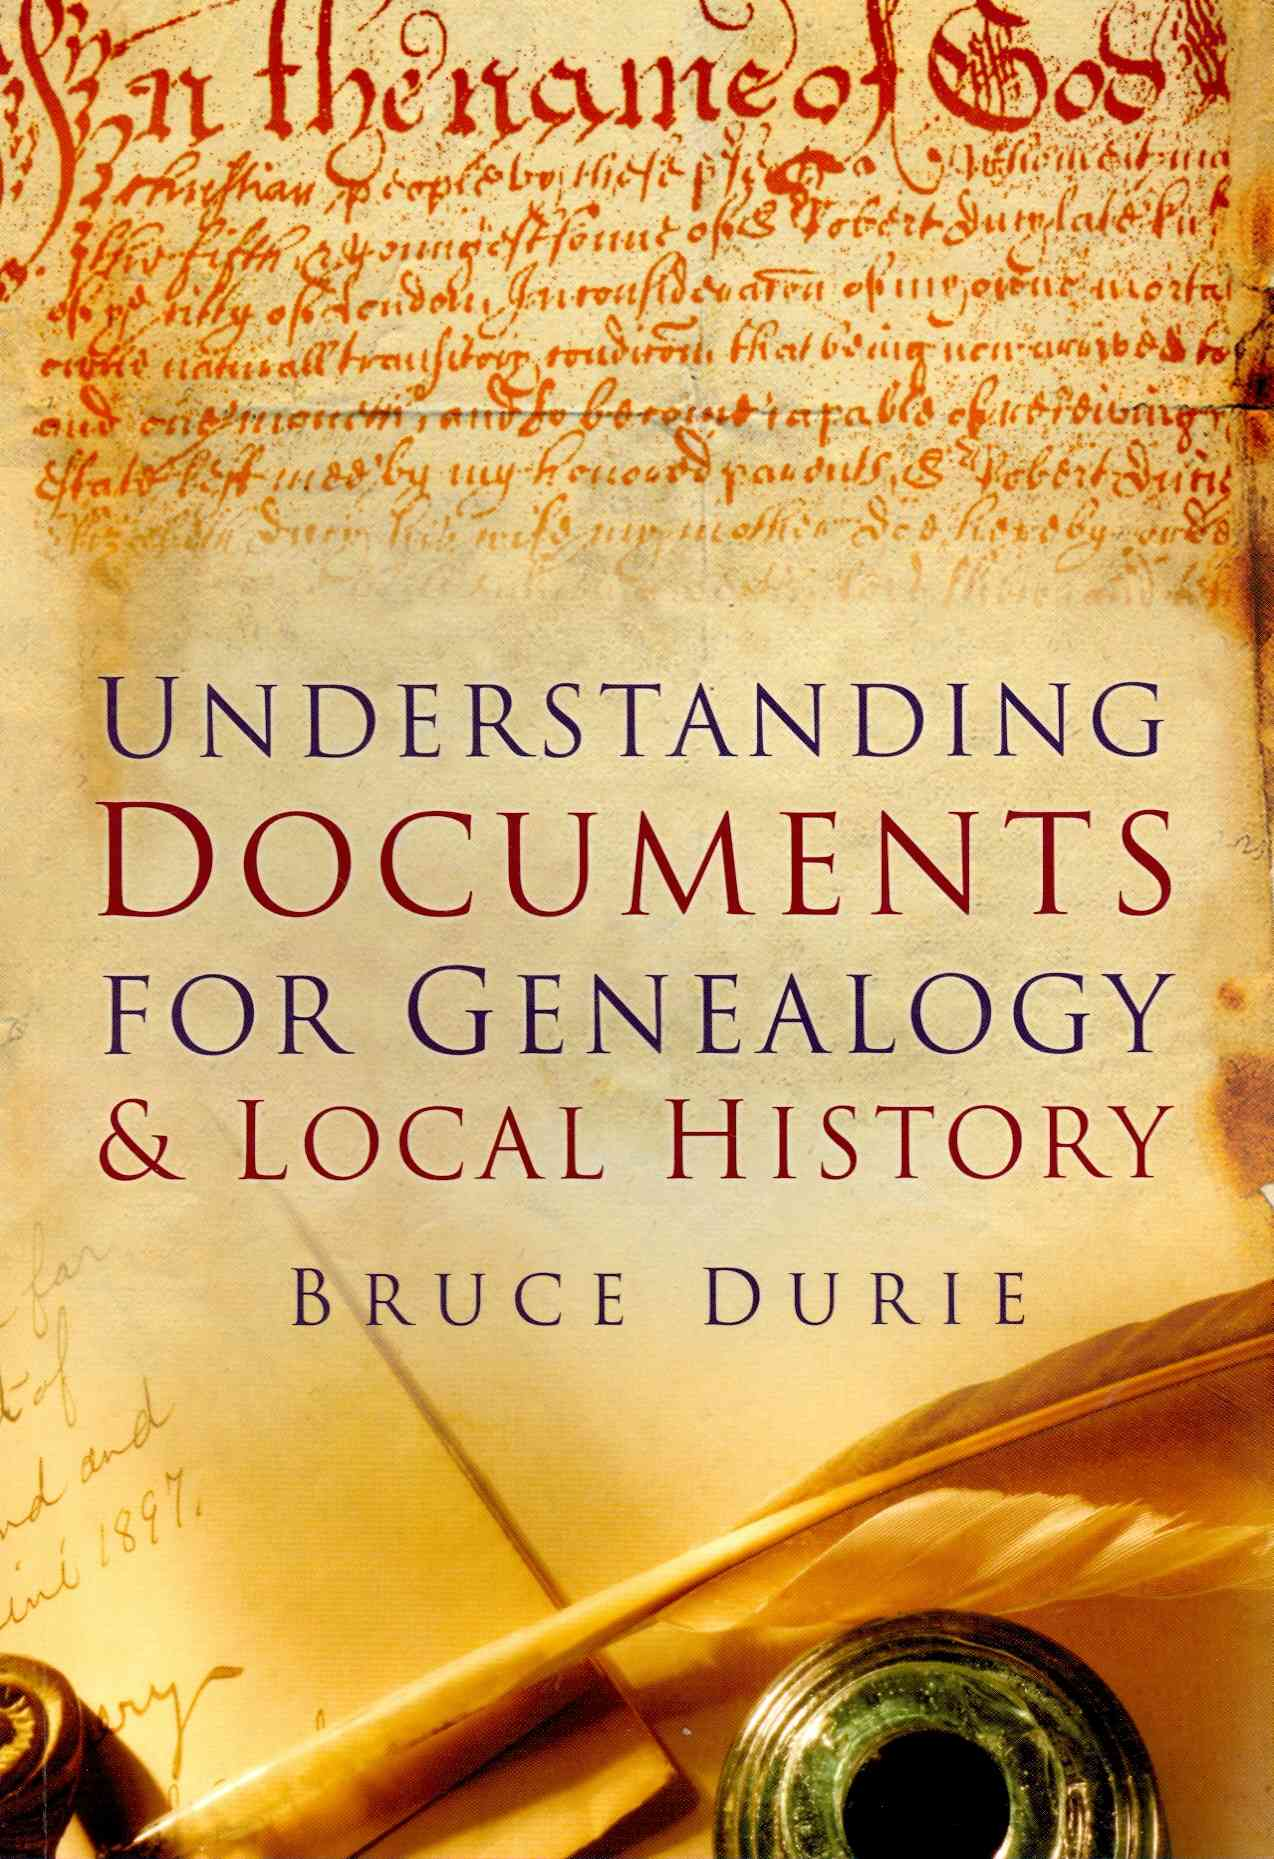 Documents for Genealogy & Local History By Durie, Bruce